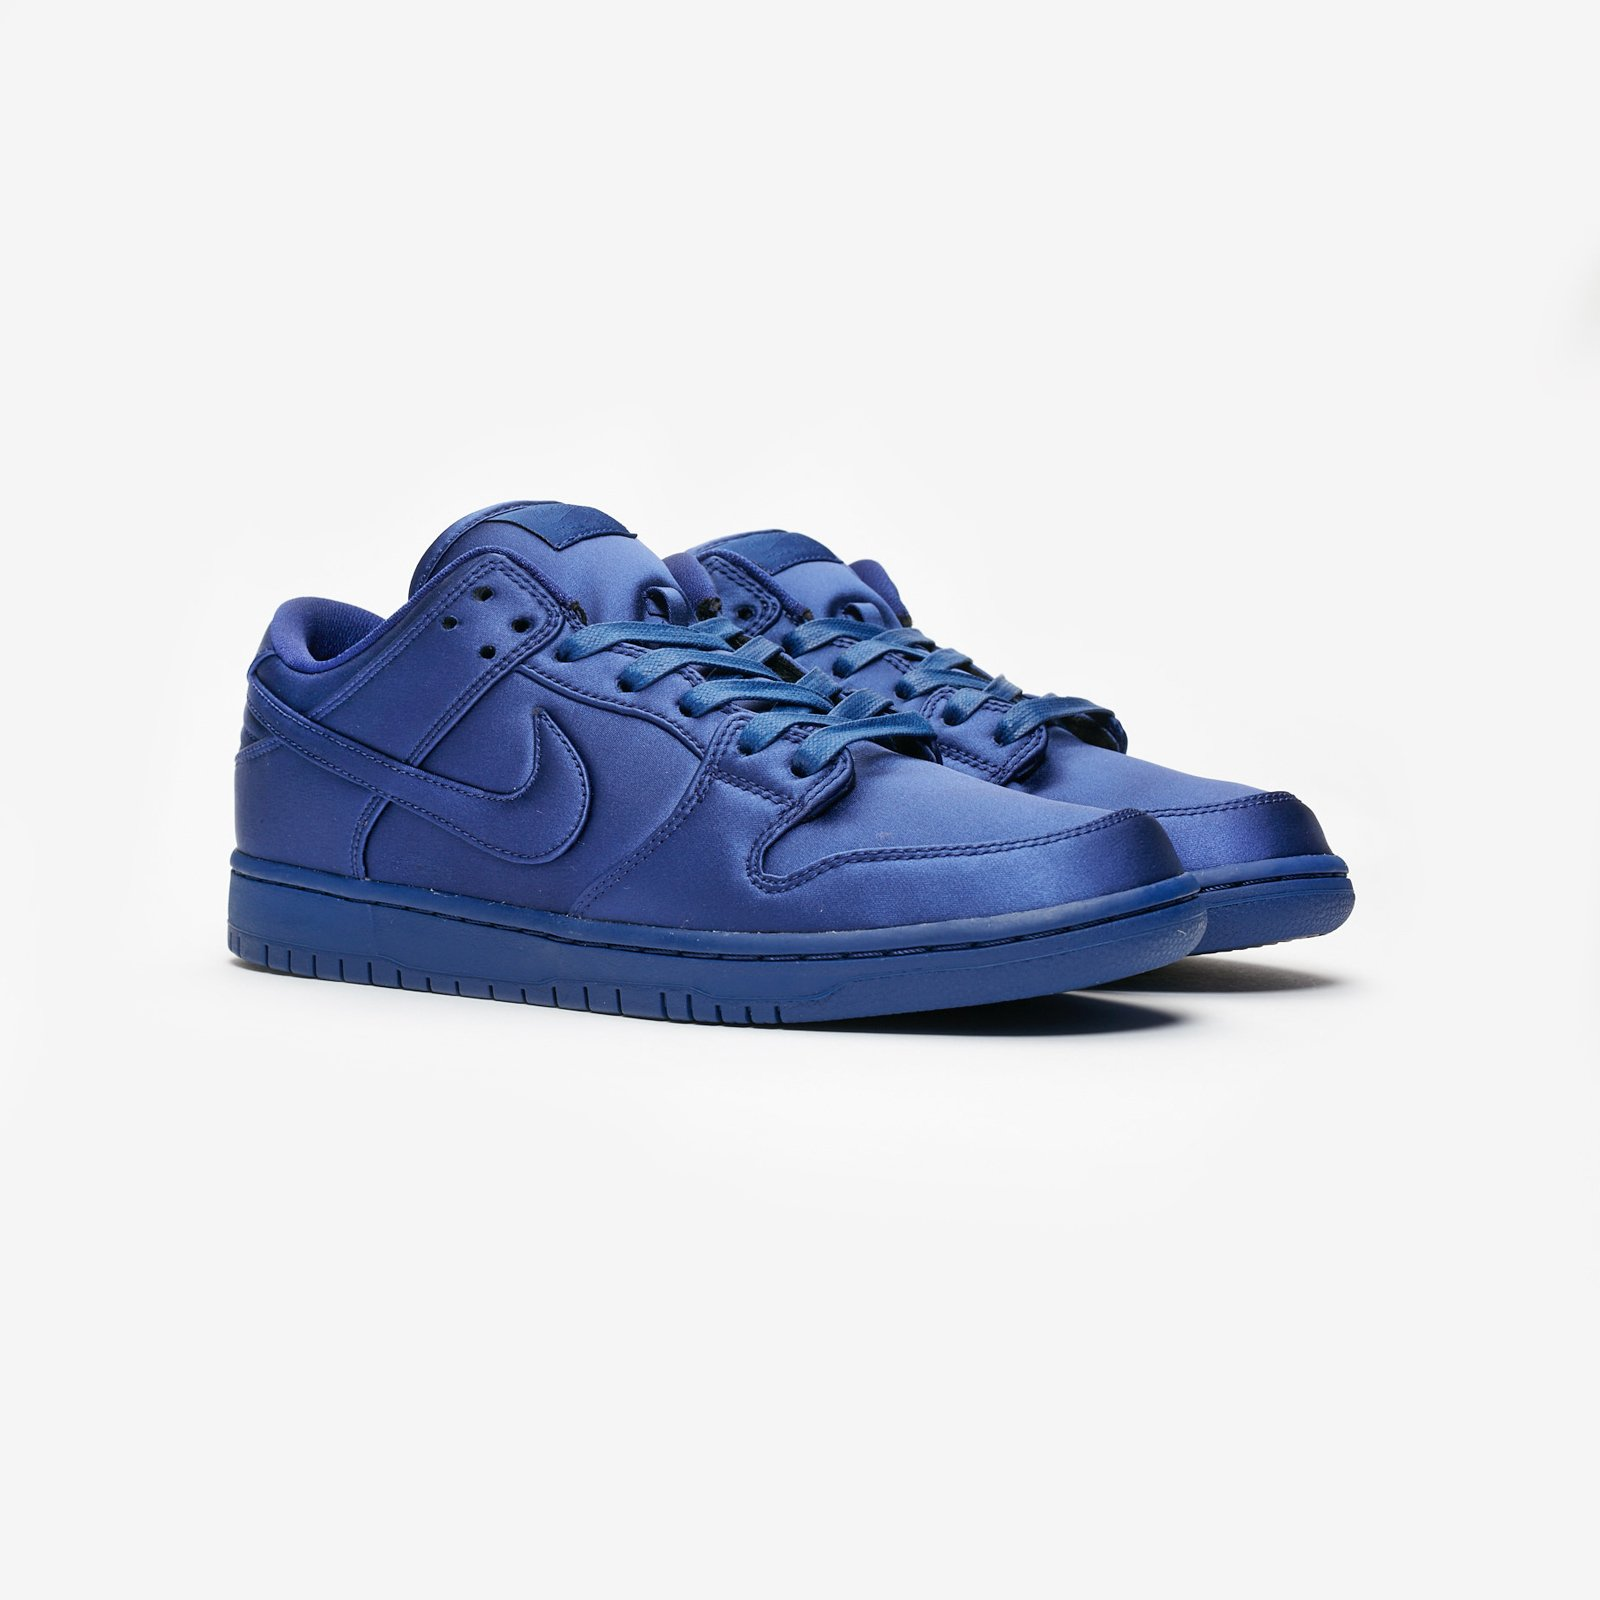 check out 851ec afdec Nike SB Dunk Low TRD NBA - Ar1577-446 - Sneakersnstuff | sneakers ...